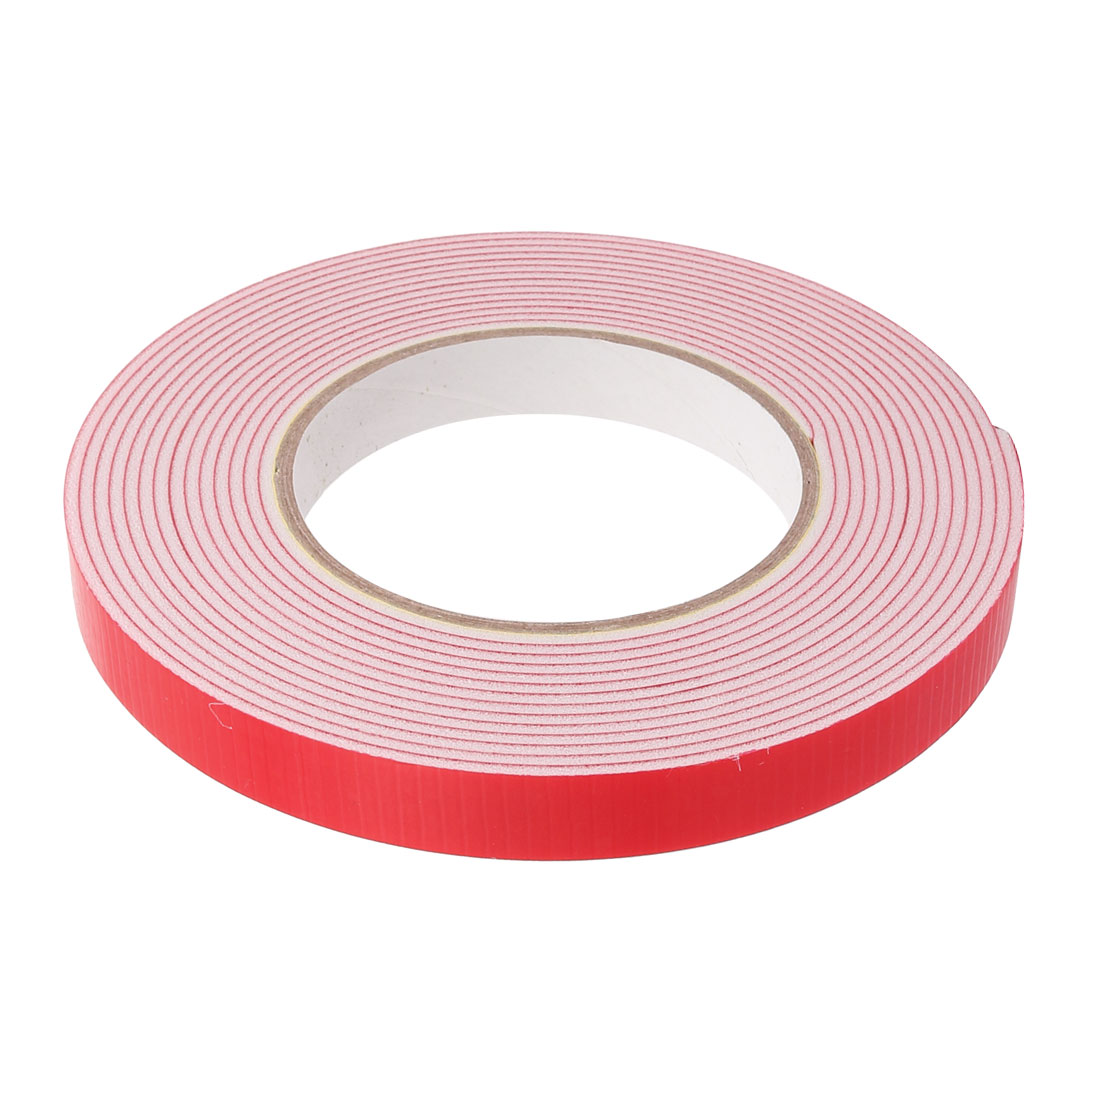 2Pcs 15mm Width 2mm Thickness Dual-sided Adhesive Shockproof Sponge Foam Tape 5M - image 2 de 3